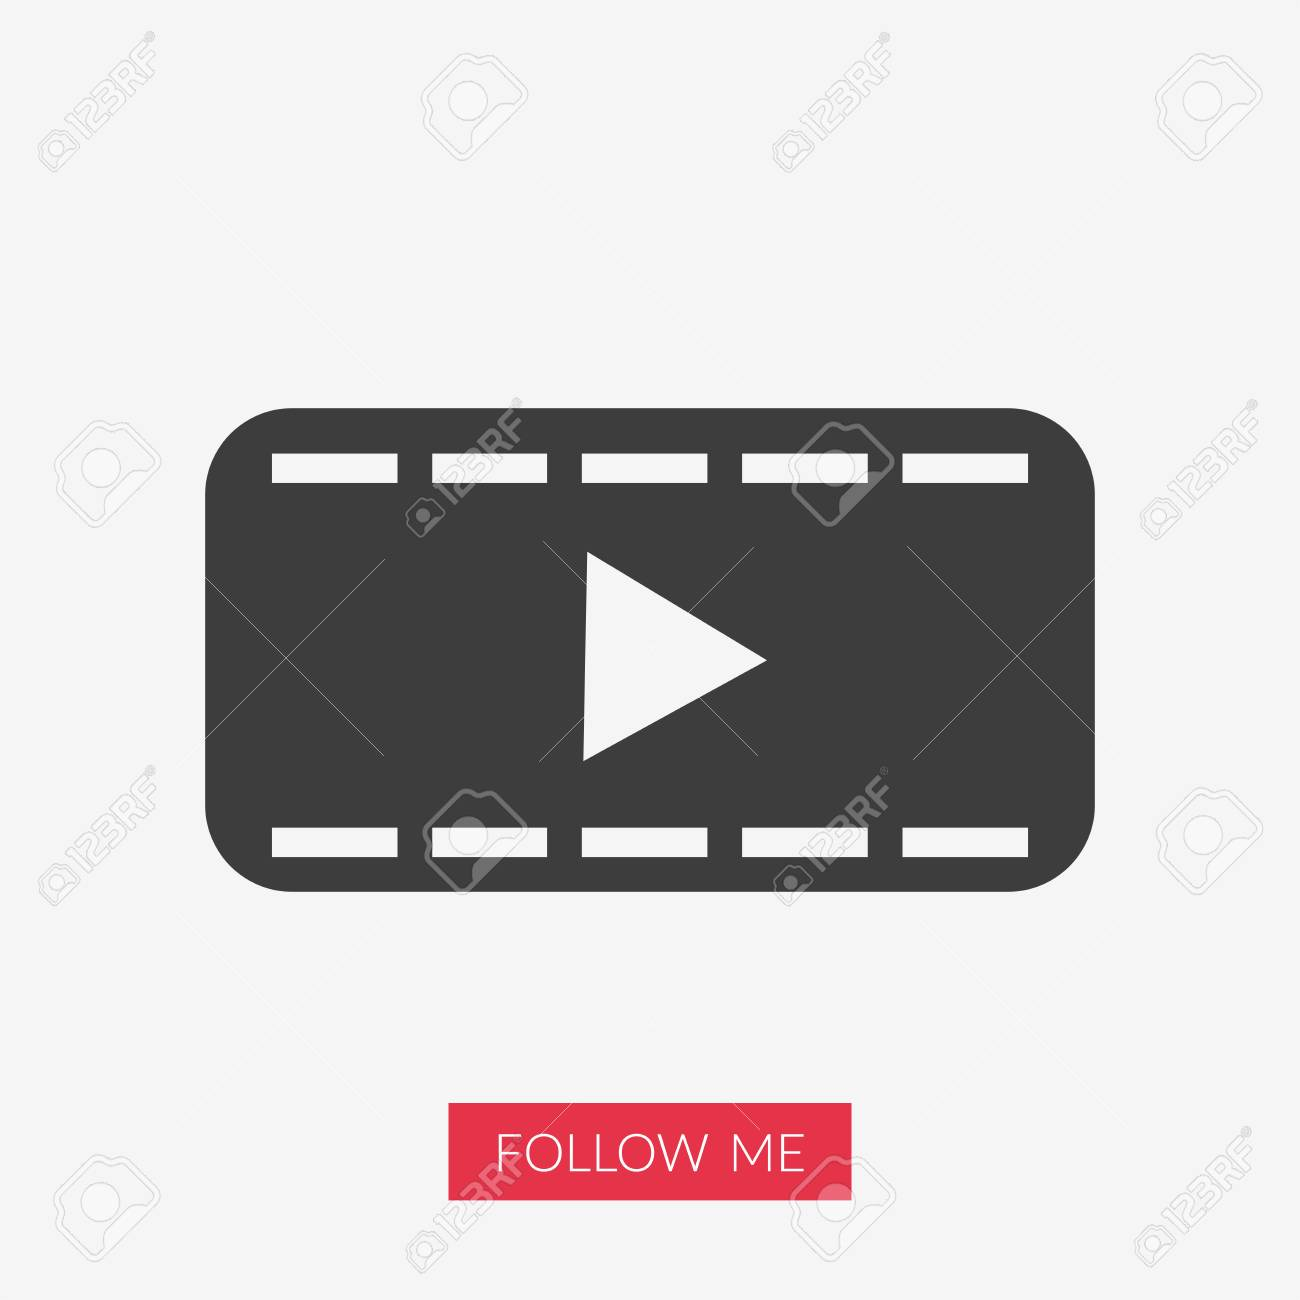 Movie Icon Play Symbol Illustration With Follow Me Text In Pink